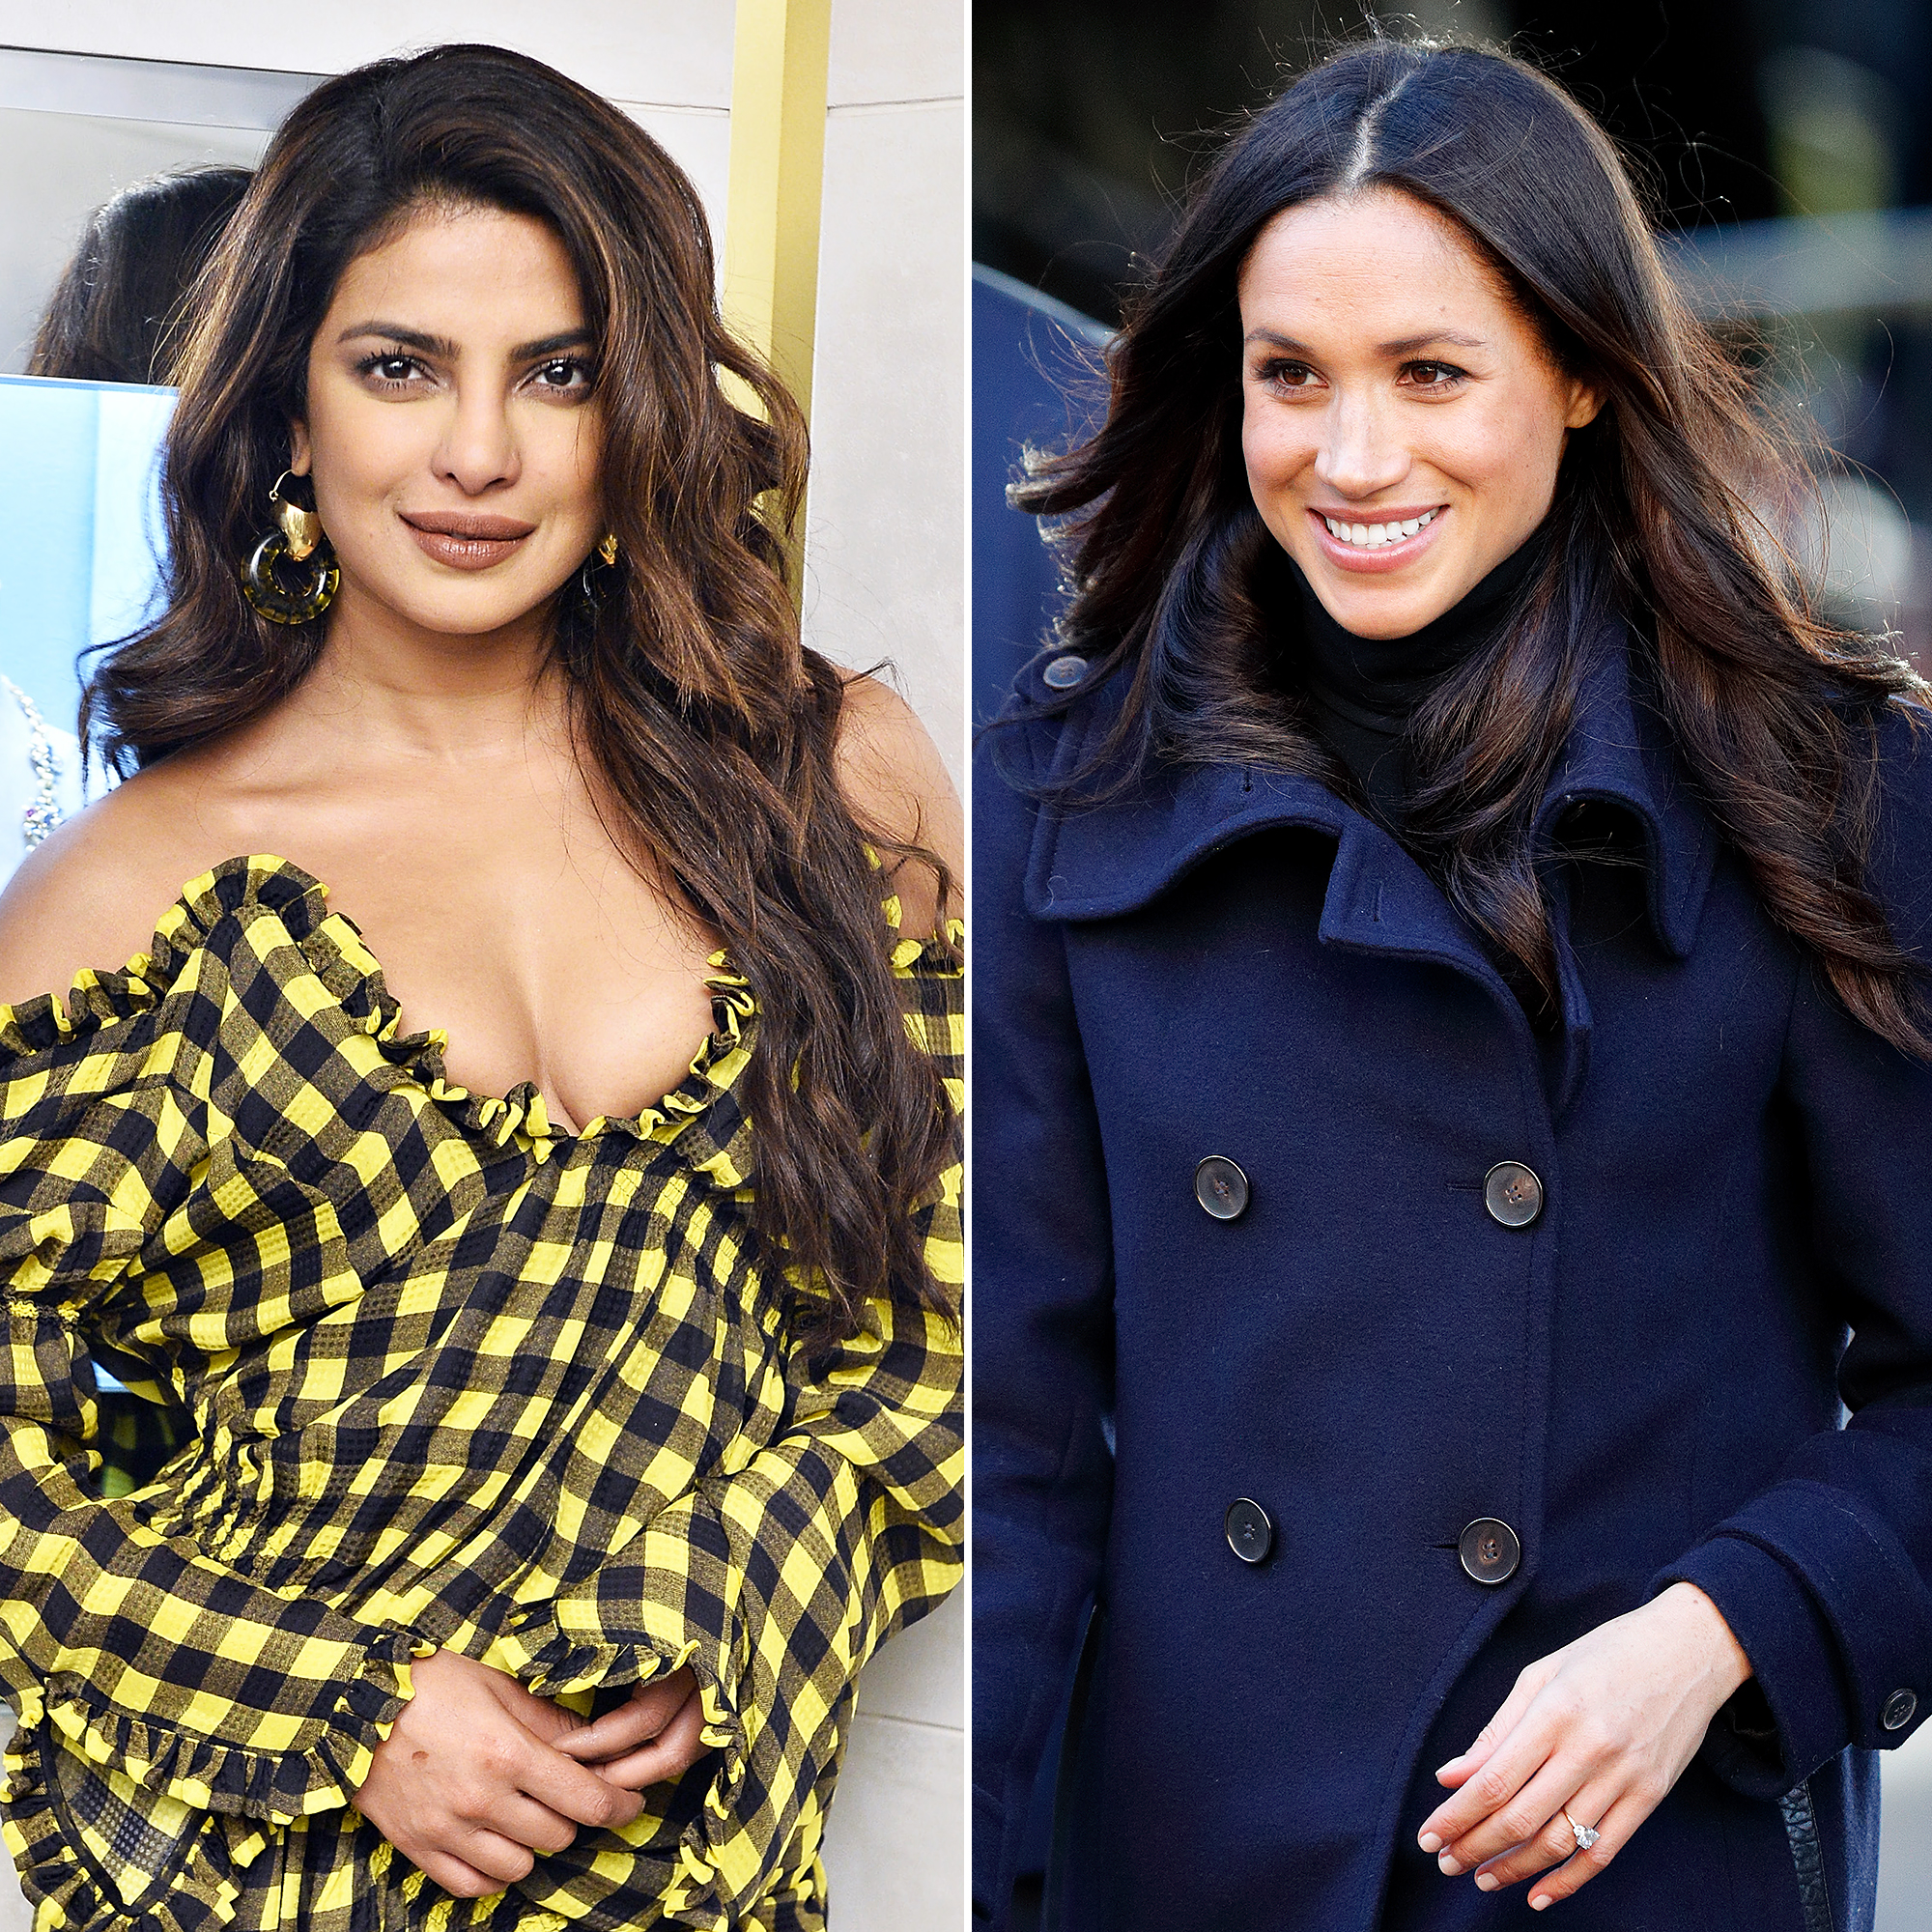 Priyanka Chopra Opens Up About Friend Meghan Markles Relationship With Prince Harry forecast